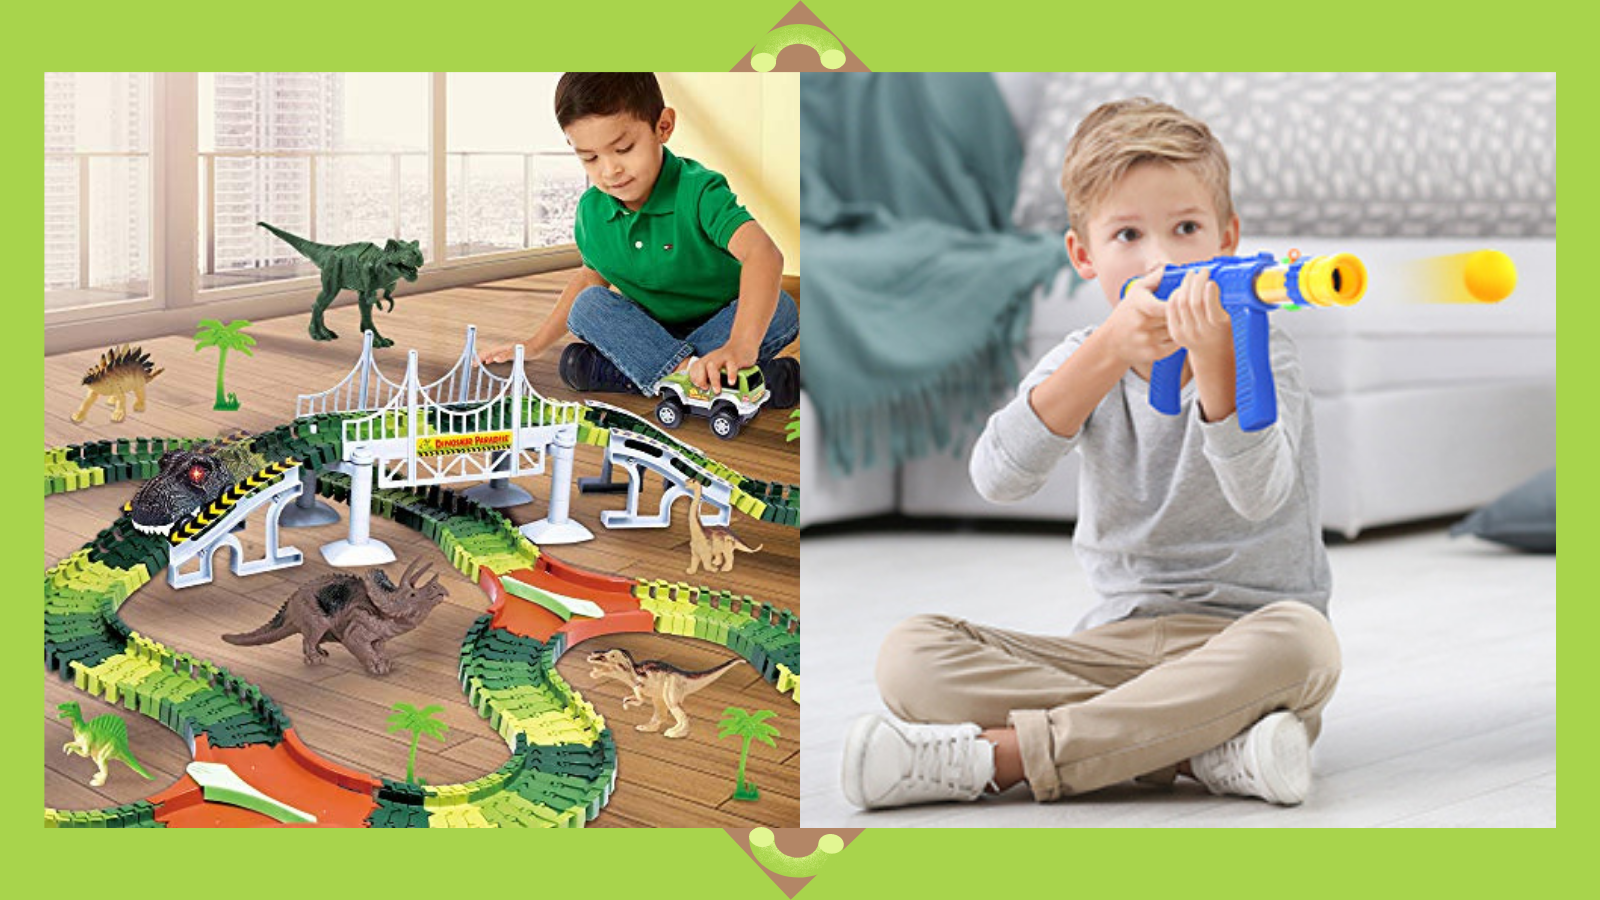 Kids playing with best dinosaur toys.